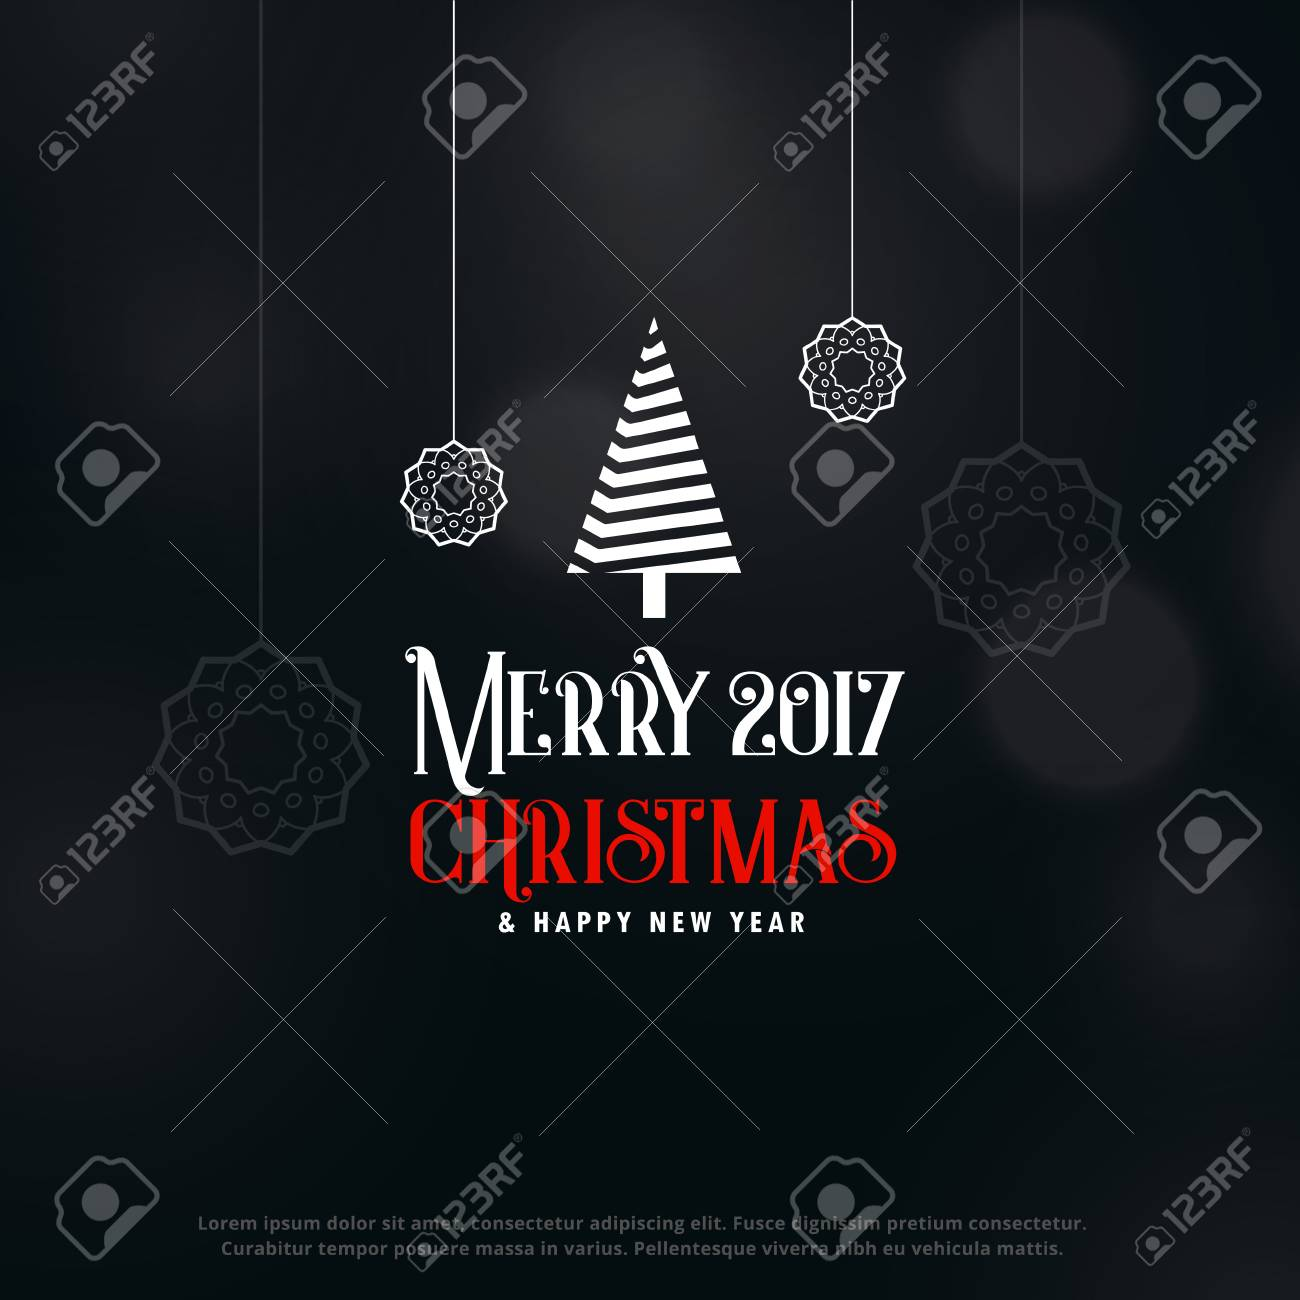 Dark Christmas.Merry Christmas Dark Greeting Design Background